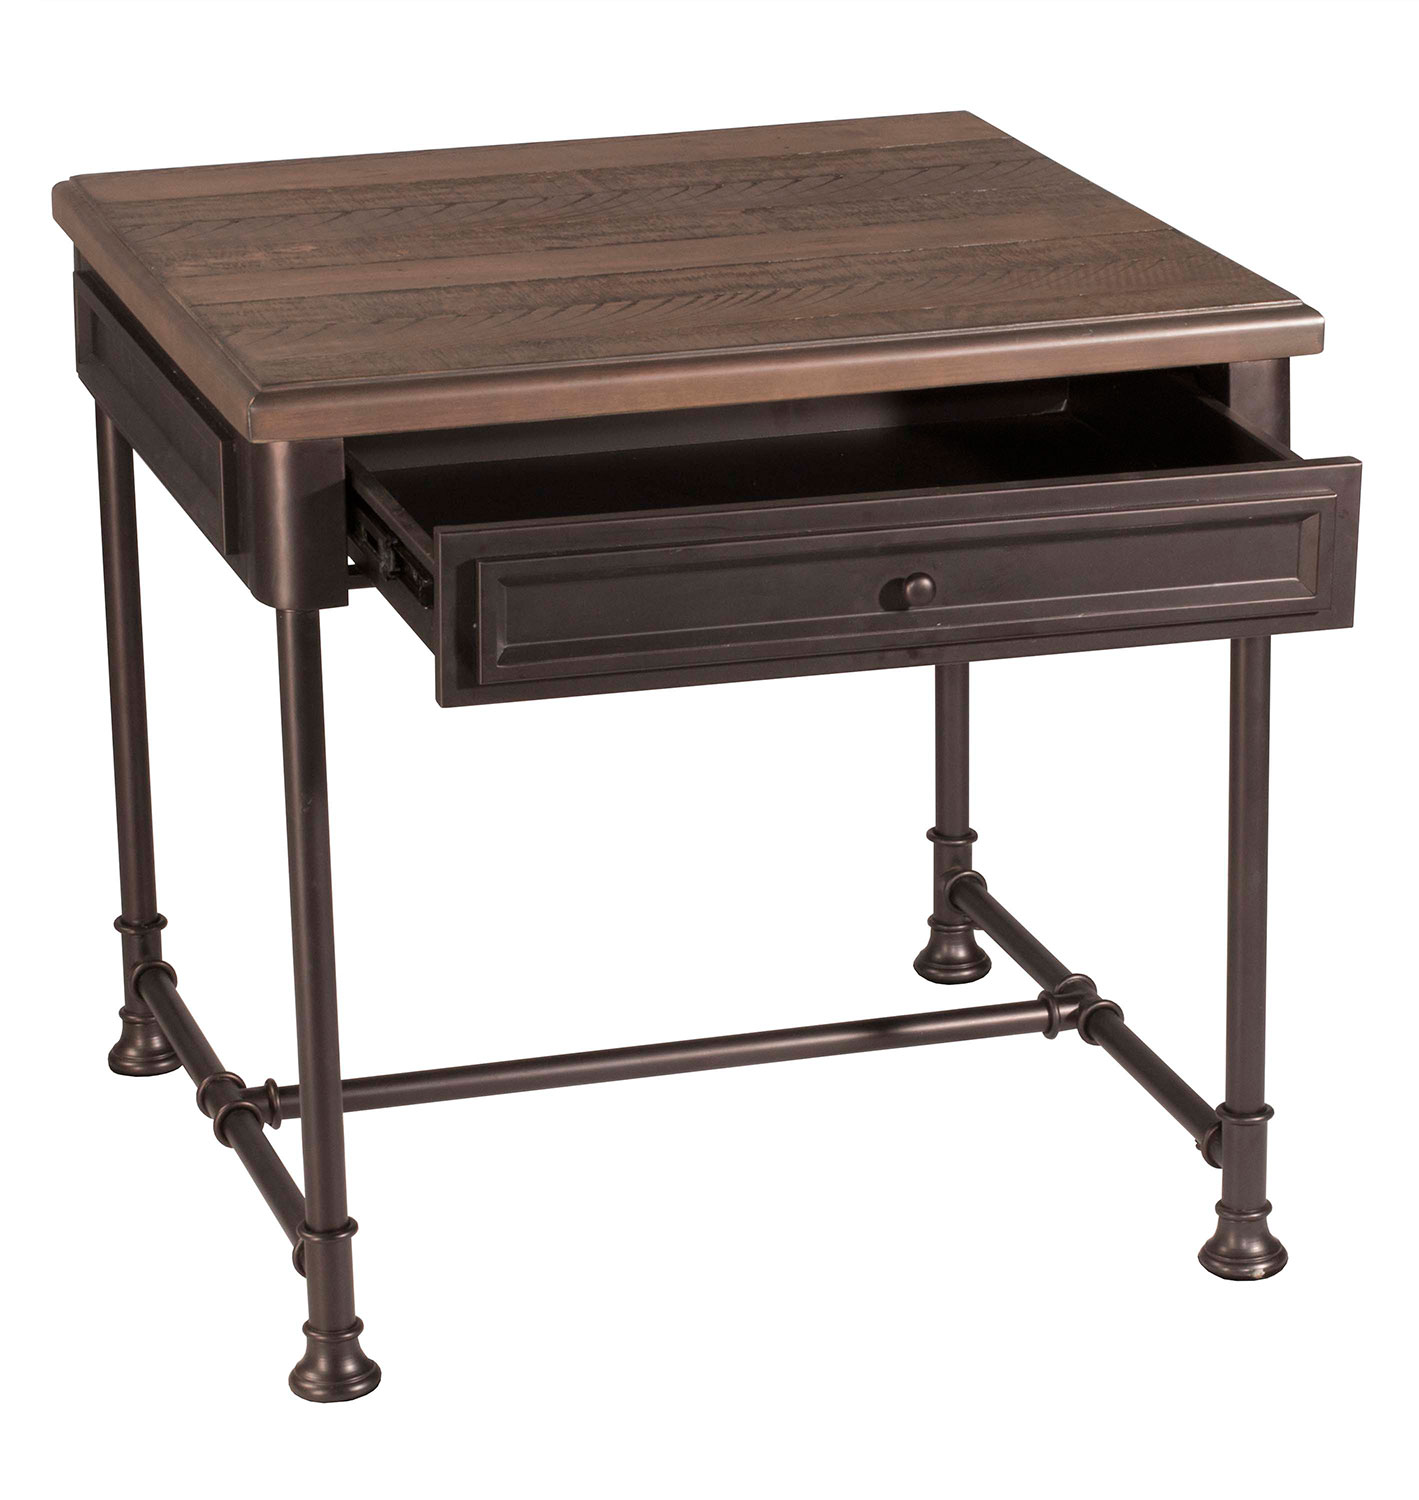 Hillsdale Casselberry End Table Walnut Brown 4582 881